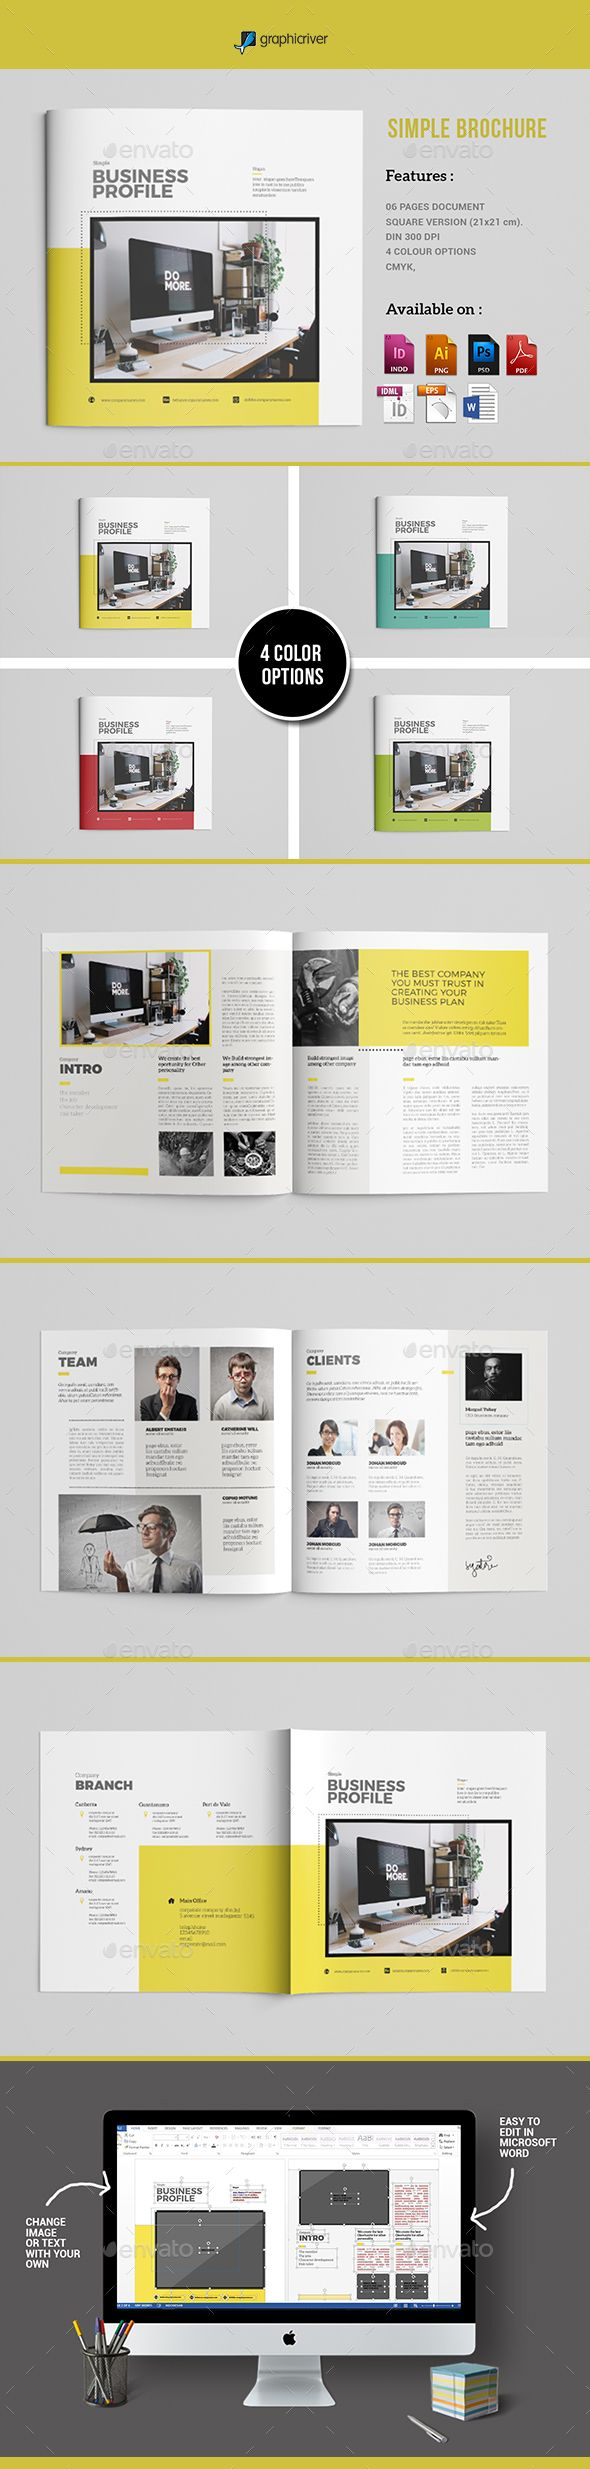 Simple Brochure Template PSD, Vector EPS, InDesign INDD, AI Illustrator